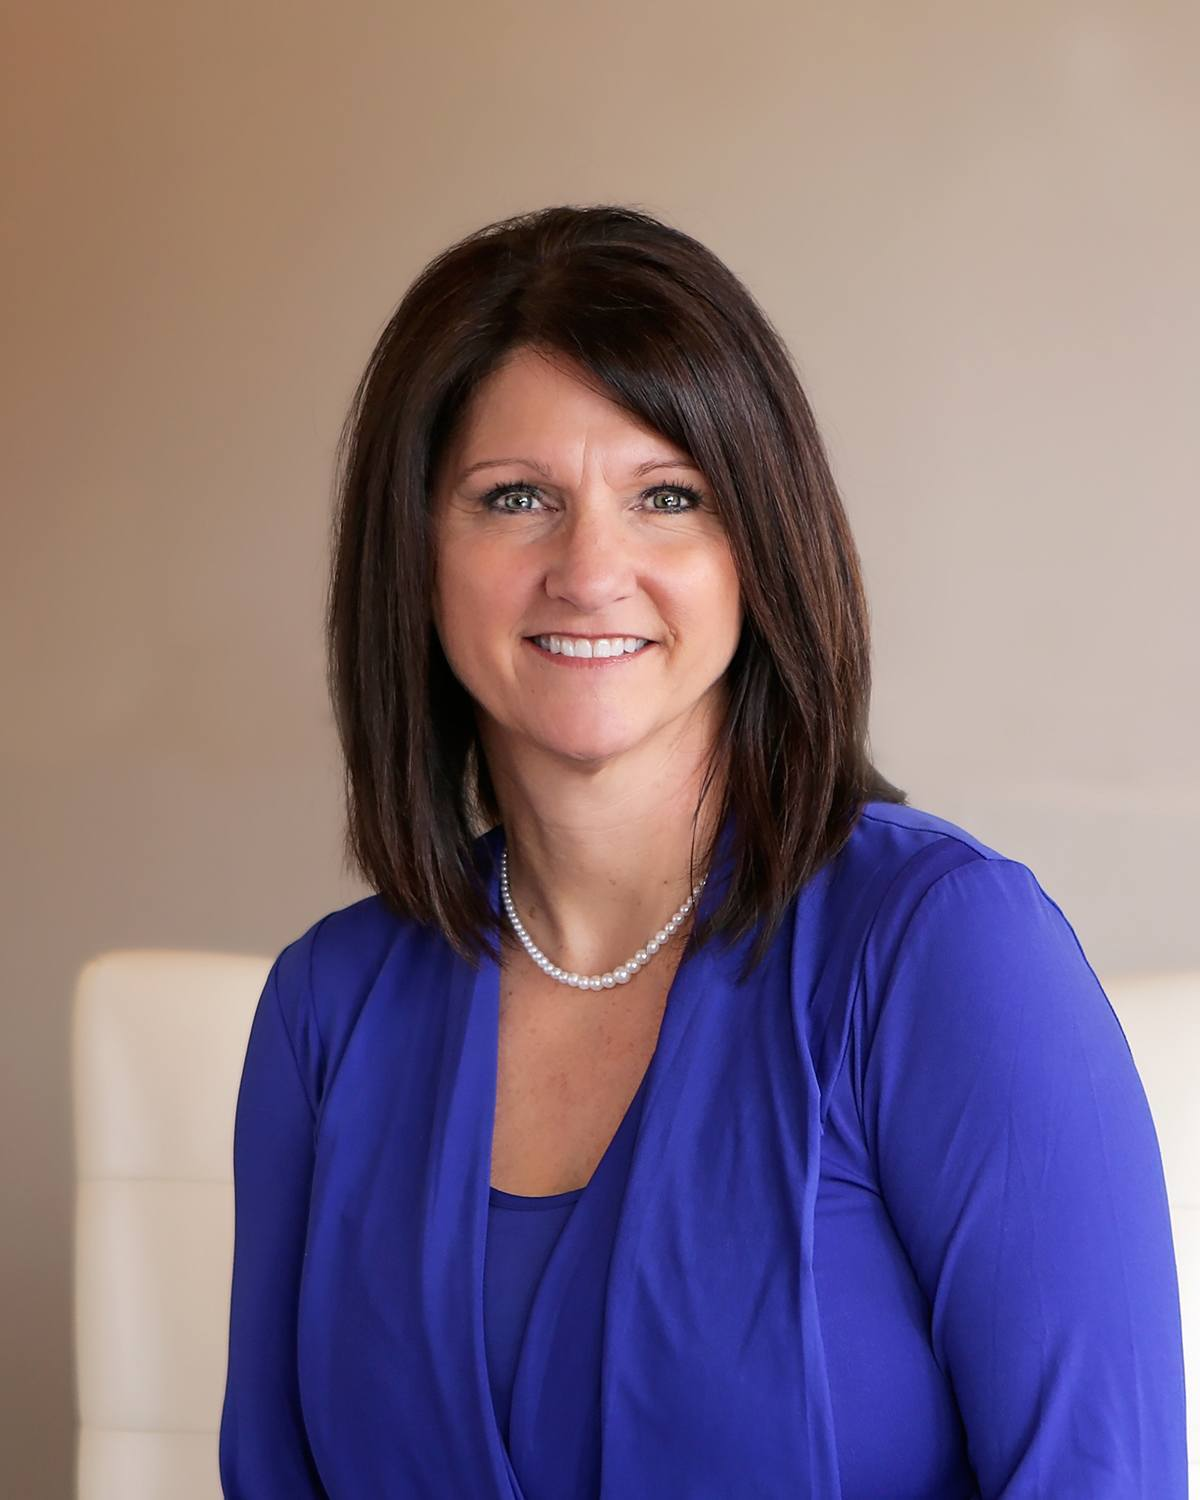 Teresa Johnson, VP of Human Resources